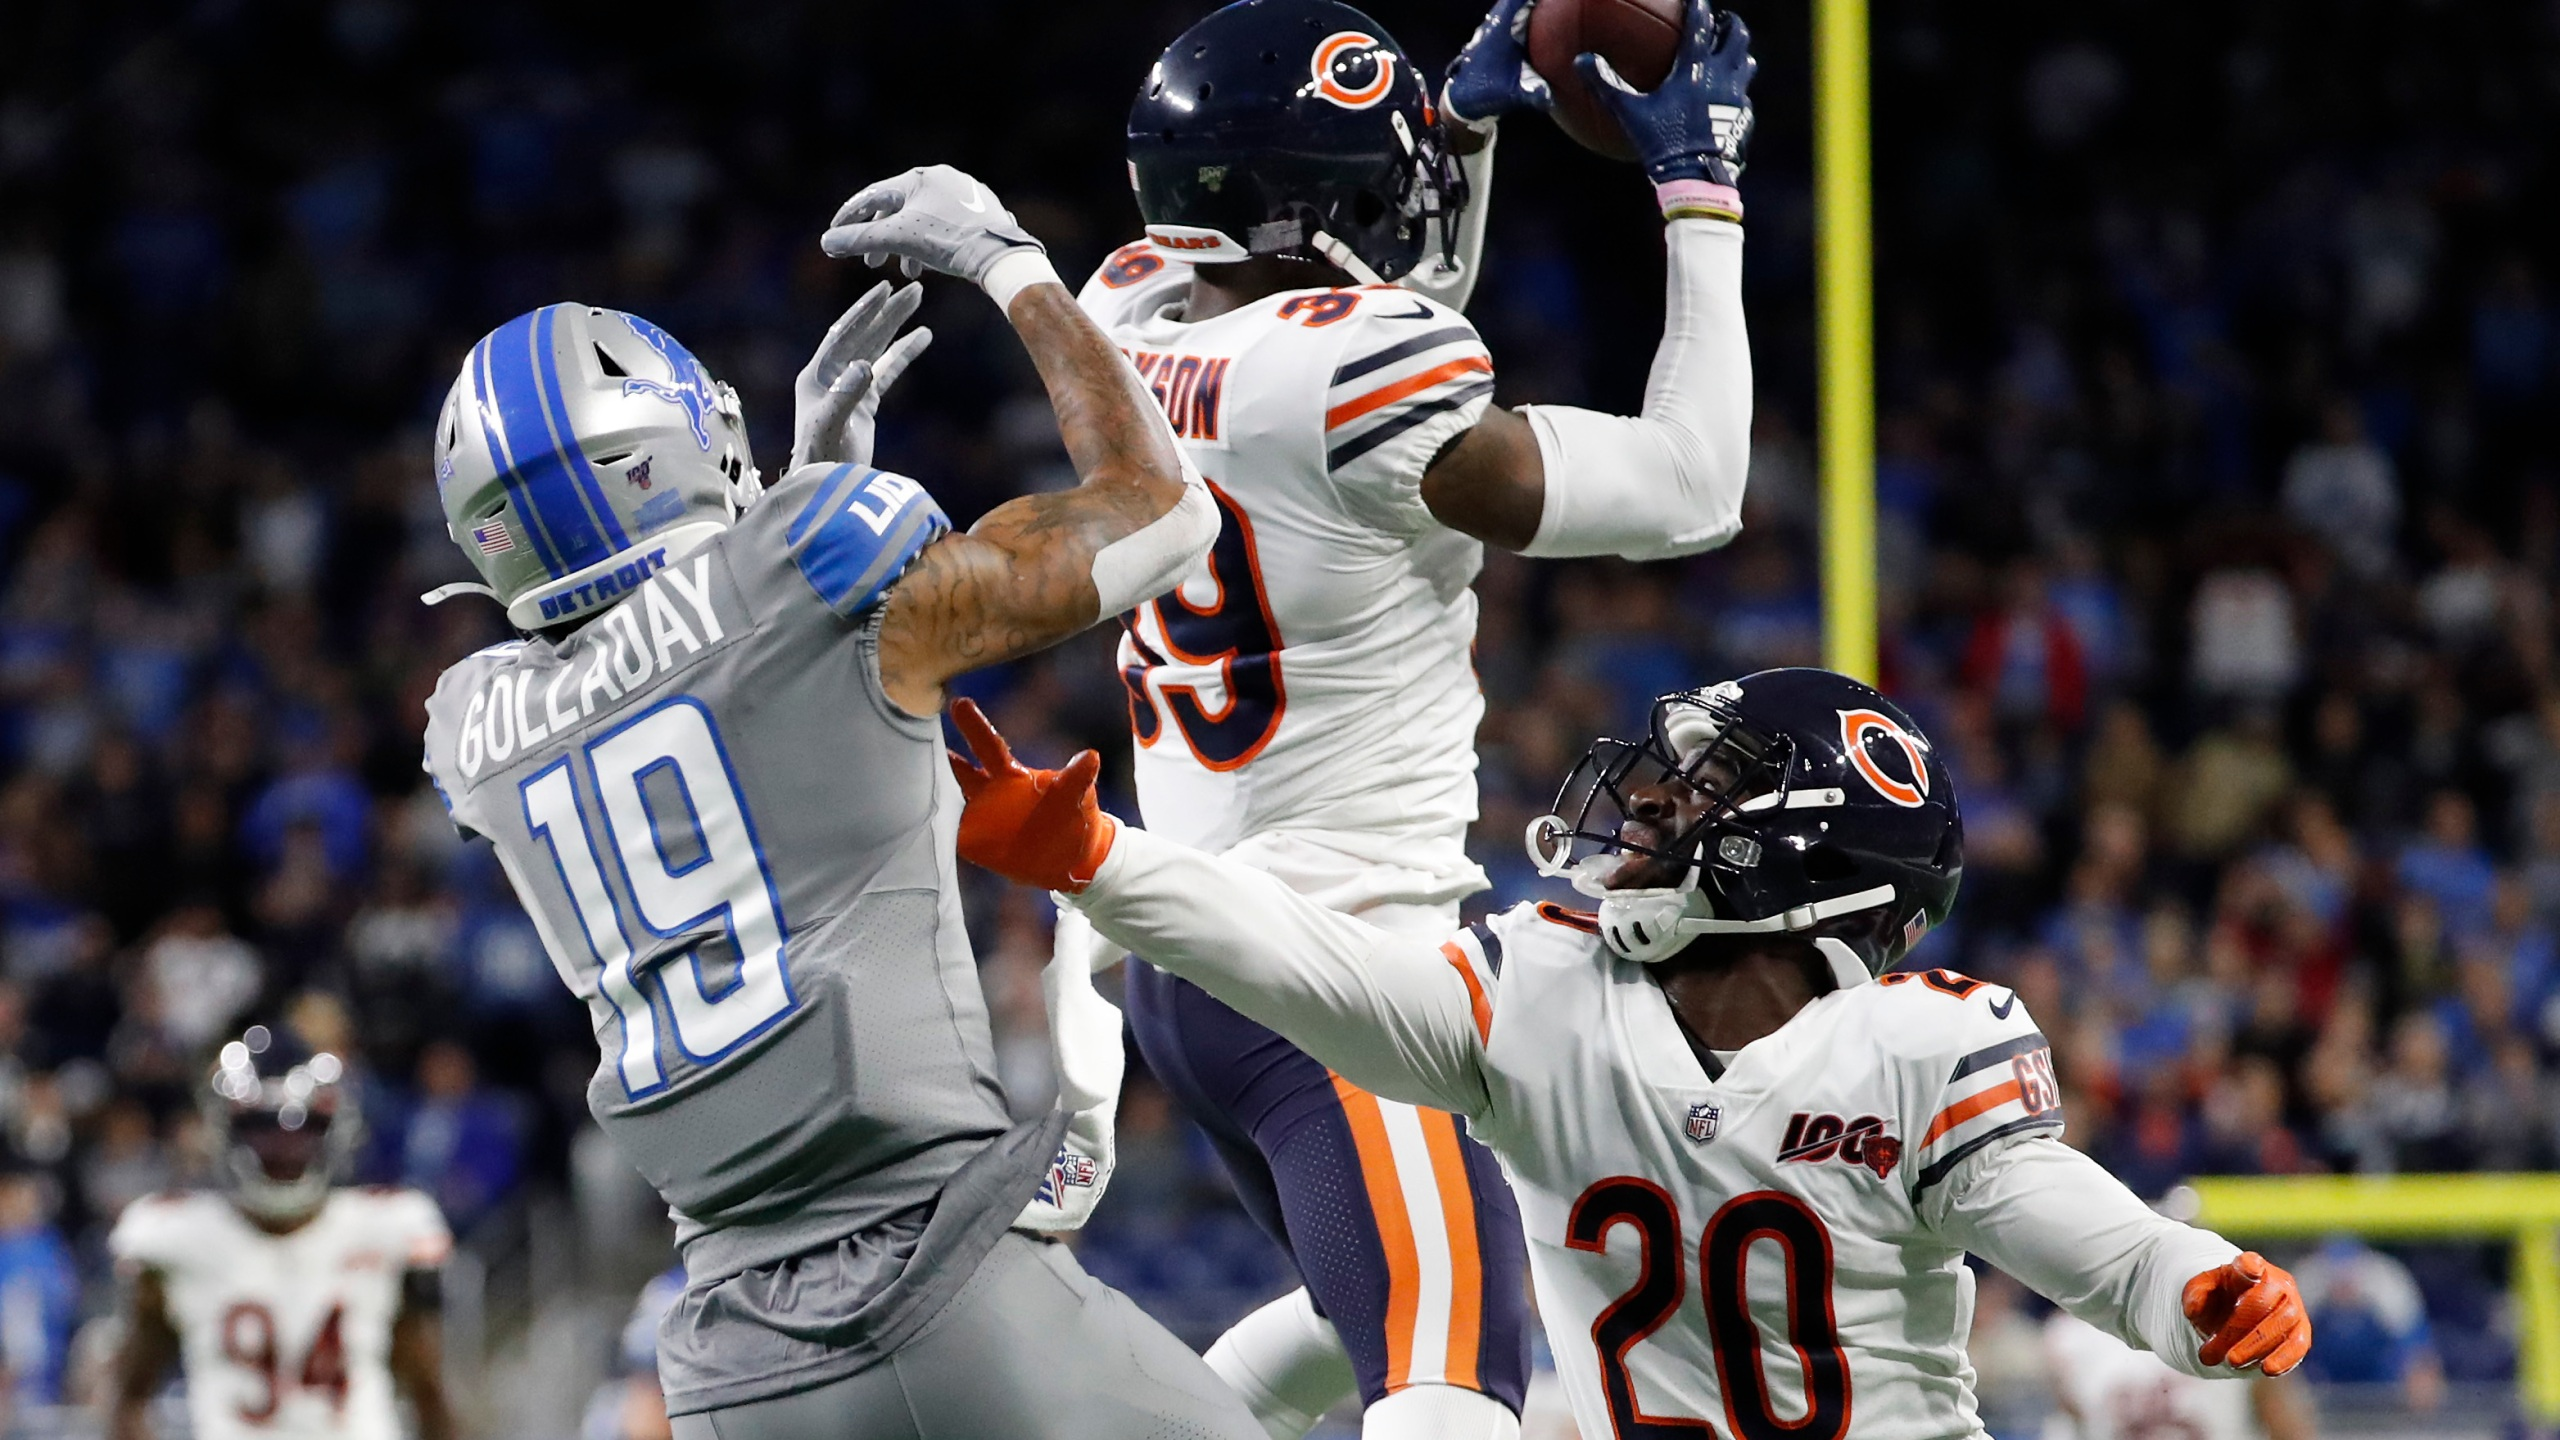 Trubisky S 3rd Td Pass Lifts Bears To 24 20 Win Over Lions